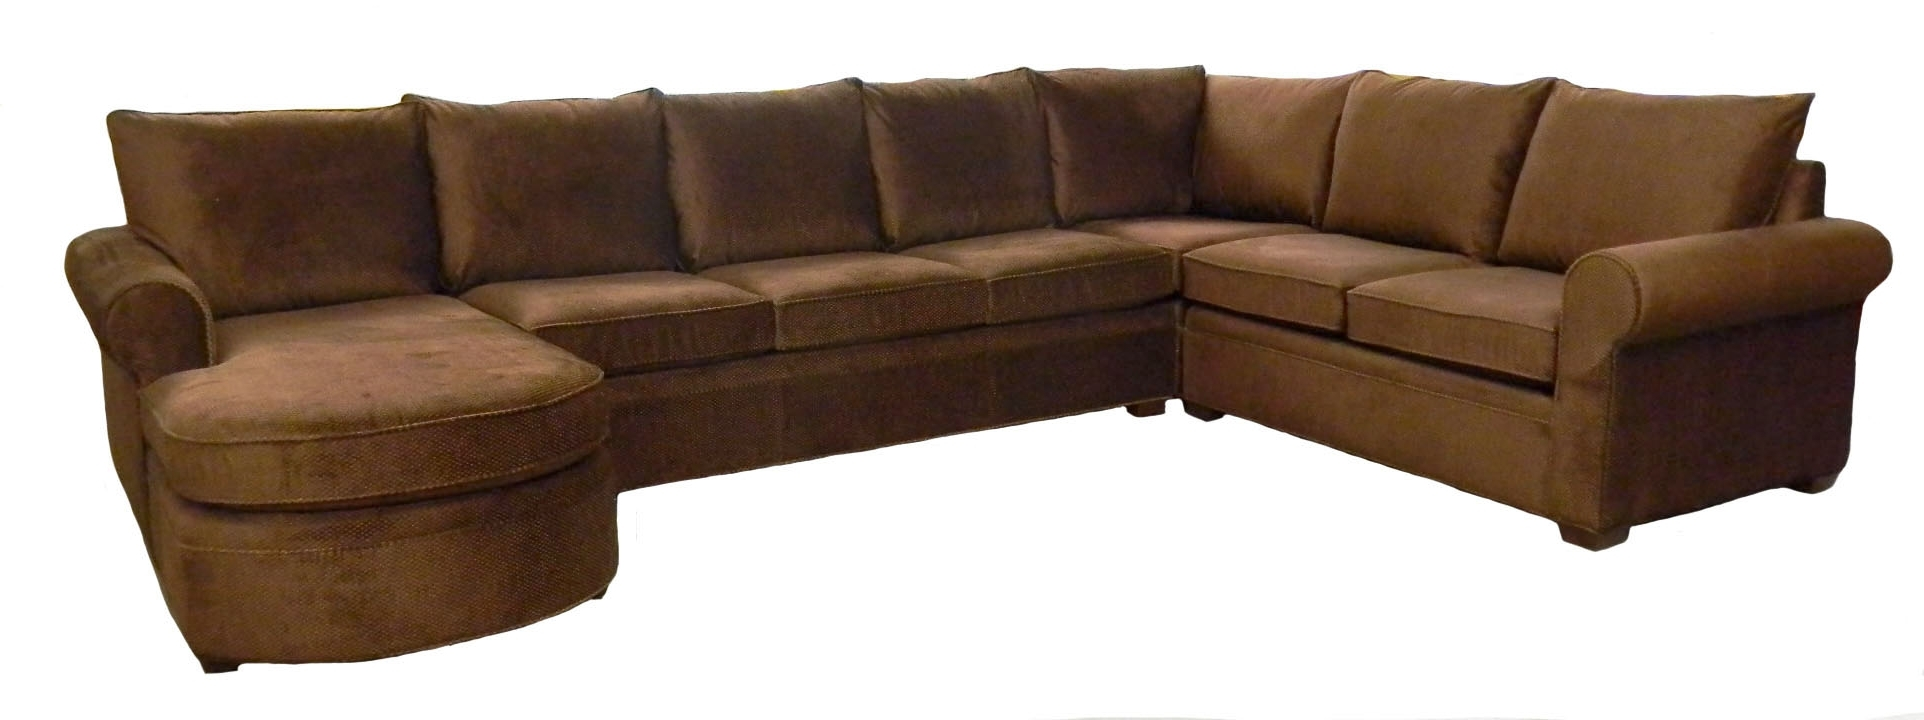 Fashionable Denver Sectional Sofas For Sectional Sofa Denver – Hotelsbacau (View 7 of 15)